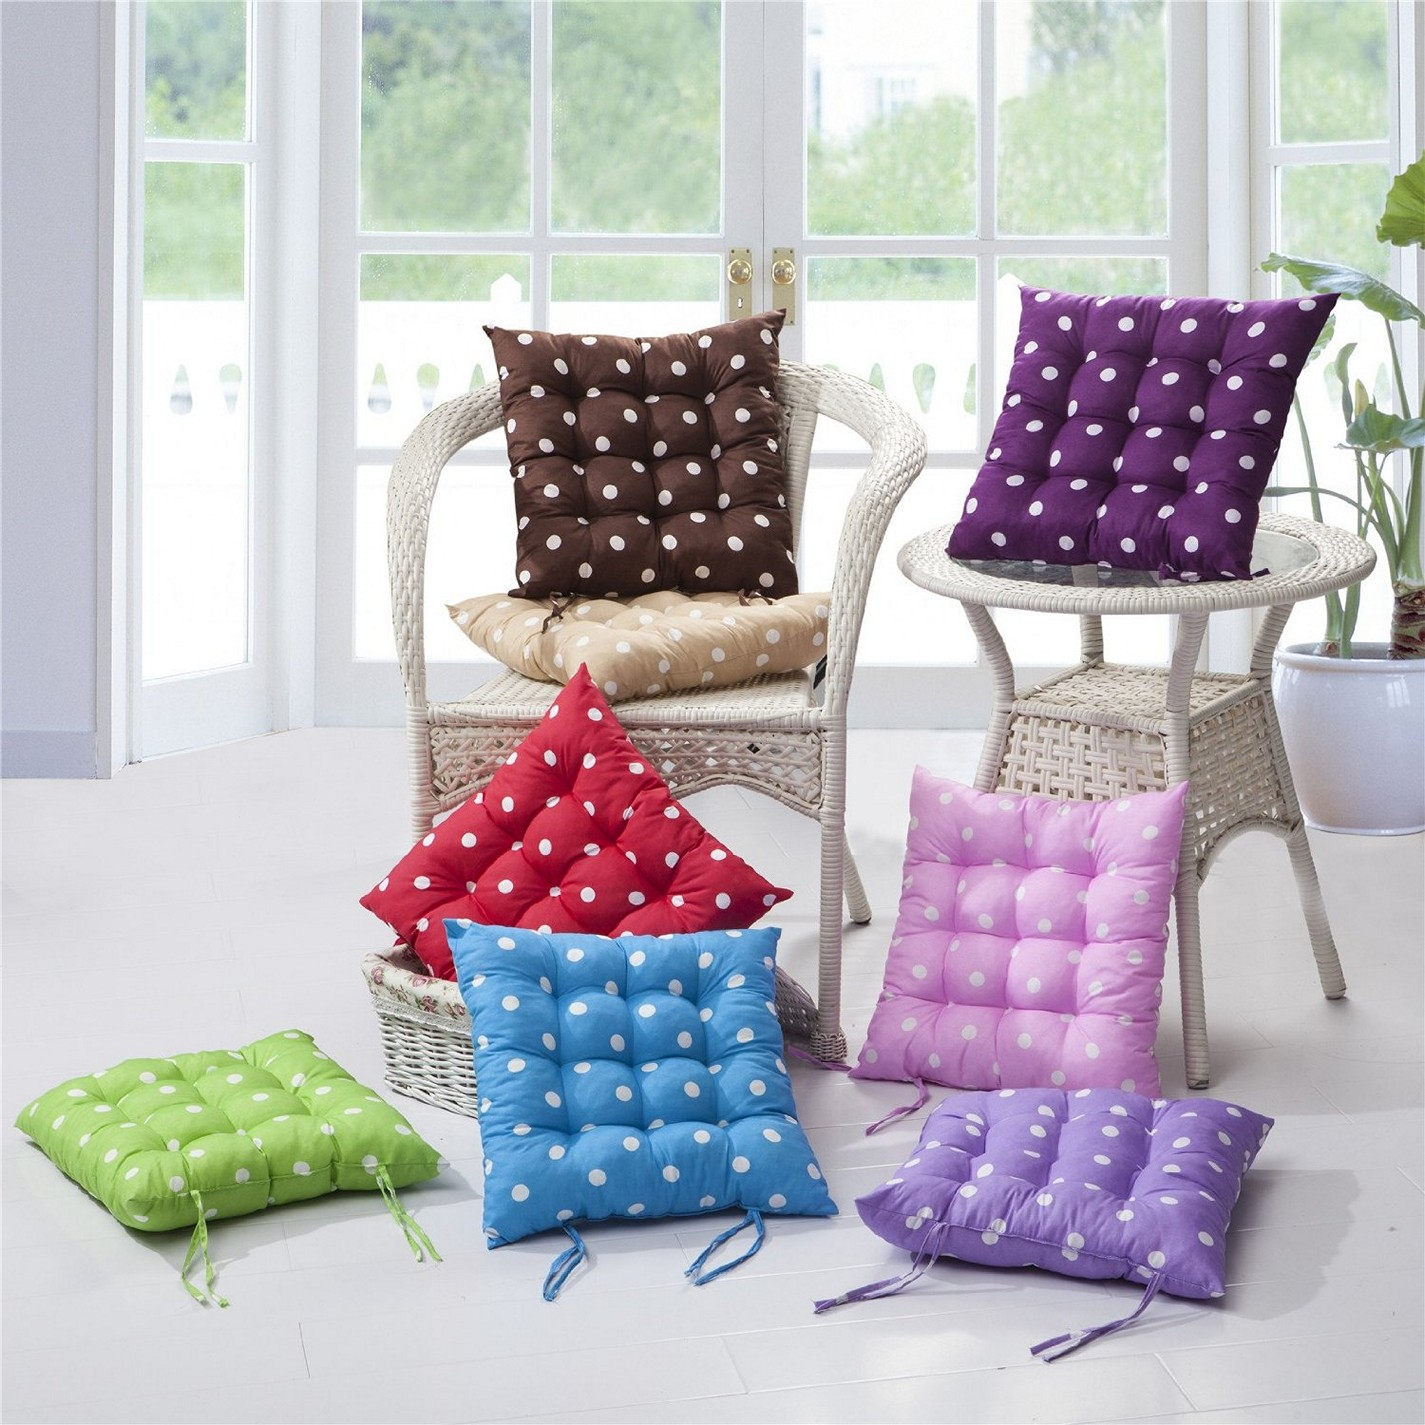 kitchen chair cushions with ties homesfeed. Black Bedroom Furniture Sets. Home Design Ideas